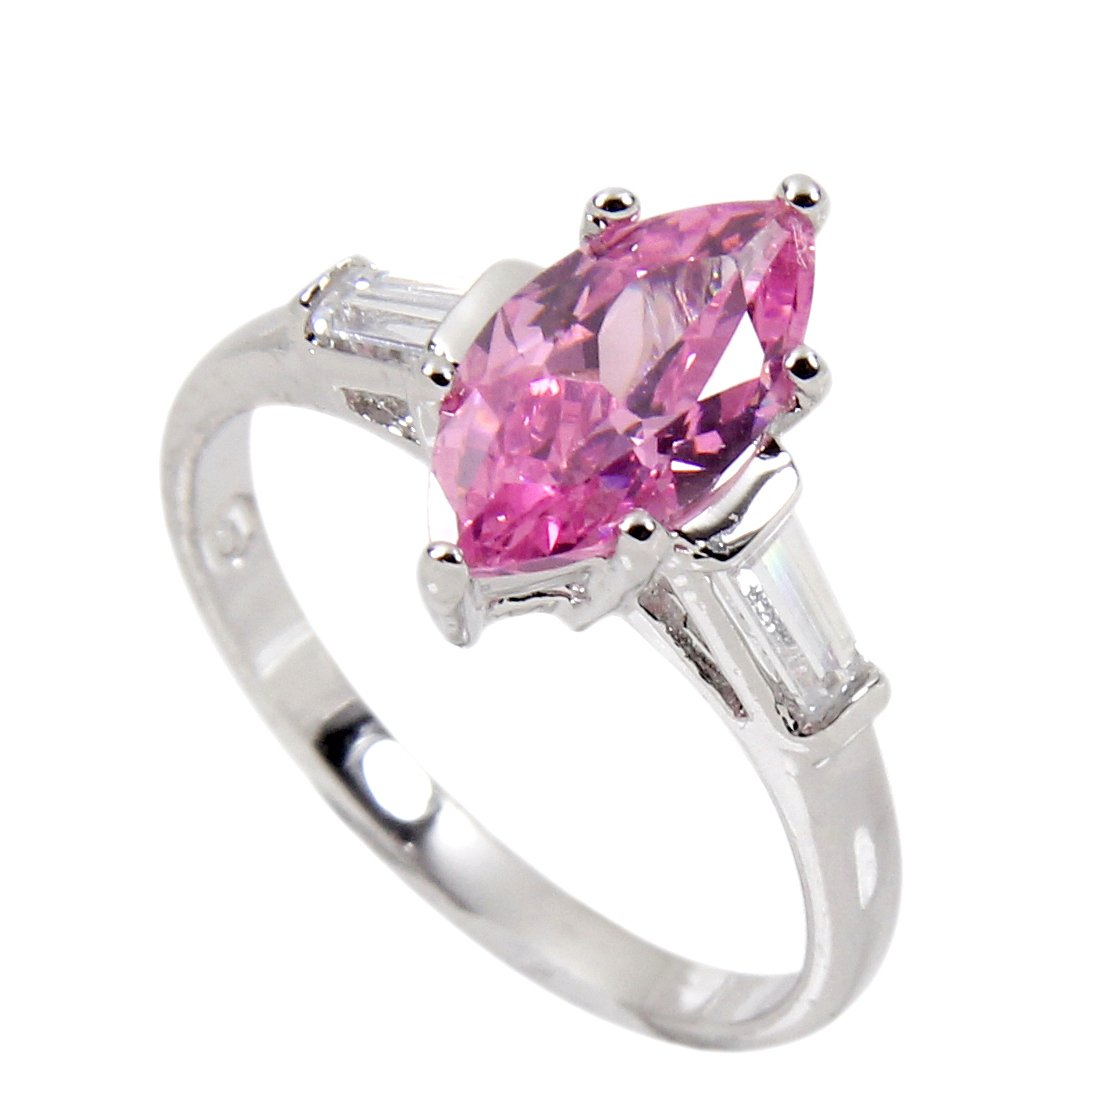 Ring Sterling Silver With Luscious Pink Marquis